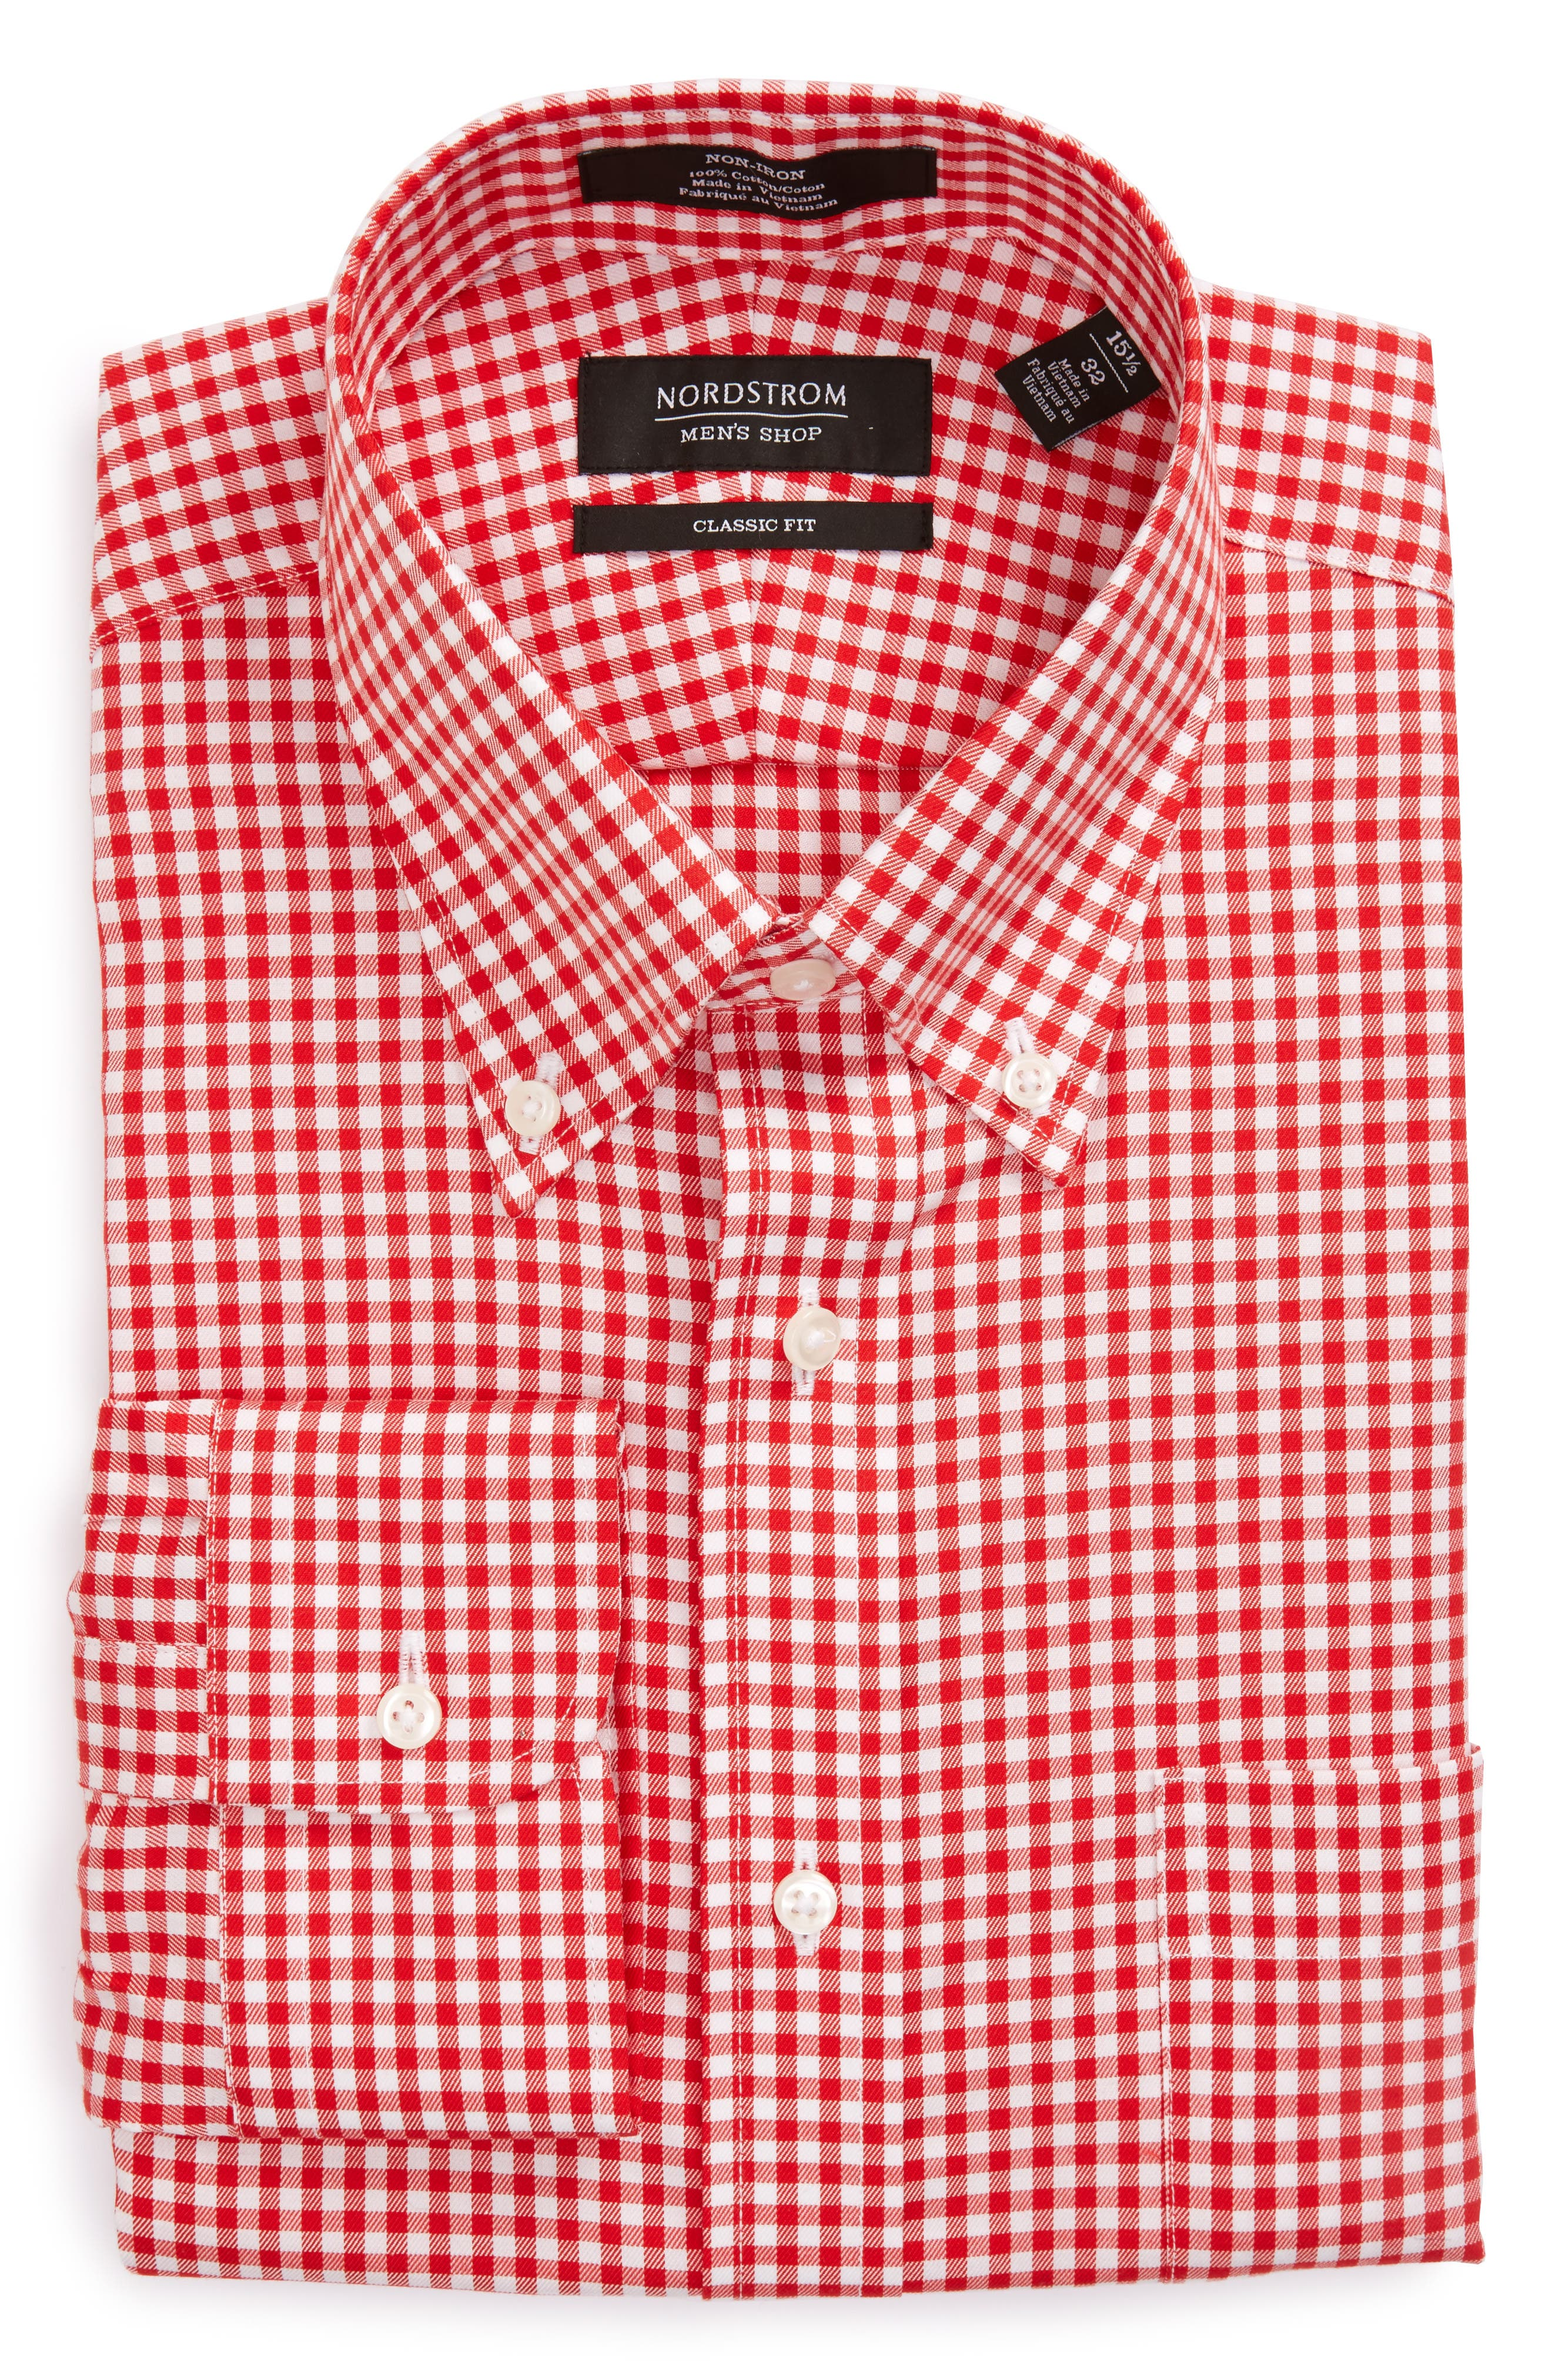 Main Image - Nordstrom Men's Shop Classic Fit Non-Iron Gingham Dress Shirt (Online Only)